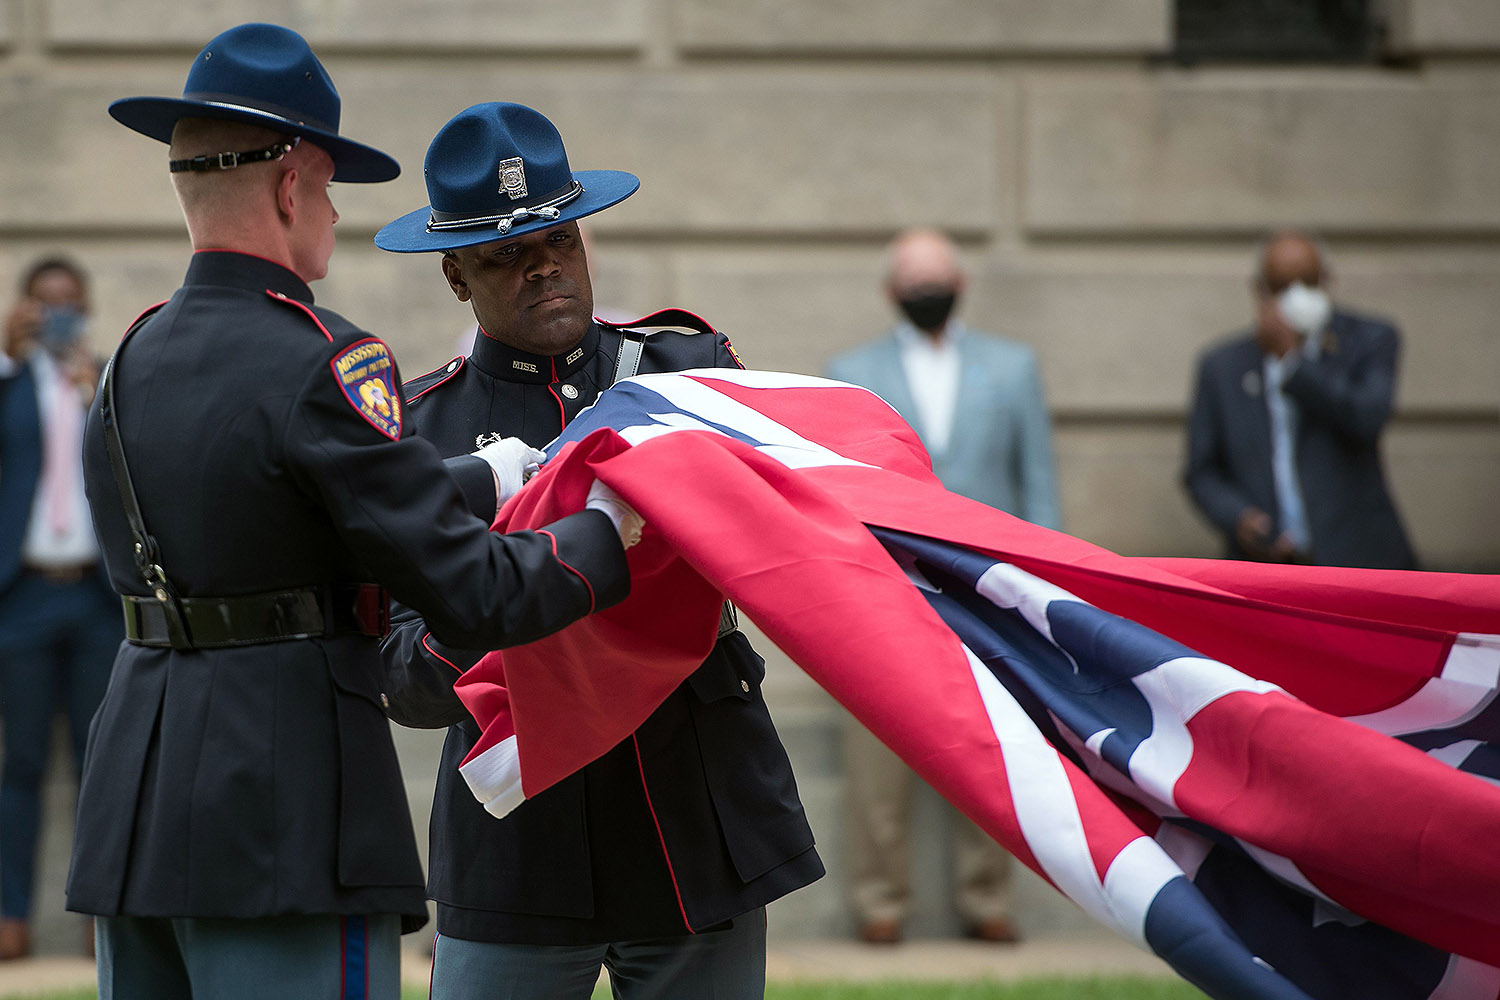 Members of the Mississippi Highway Safety Patrol Honor Guard retire the state flag outside the capitol building in Jackson, Mississippi, on July 1. The flag, the last in the United States to feature a Confederate emblem, was permanently retired. RORY DOYLE/AFP via Getty Images